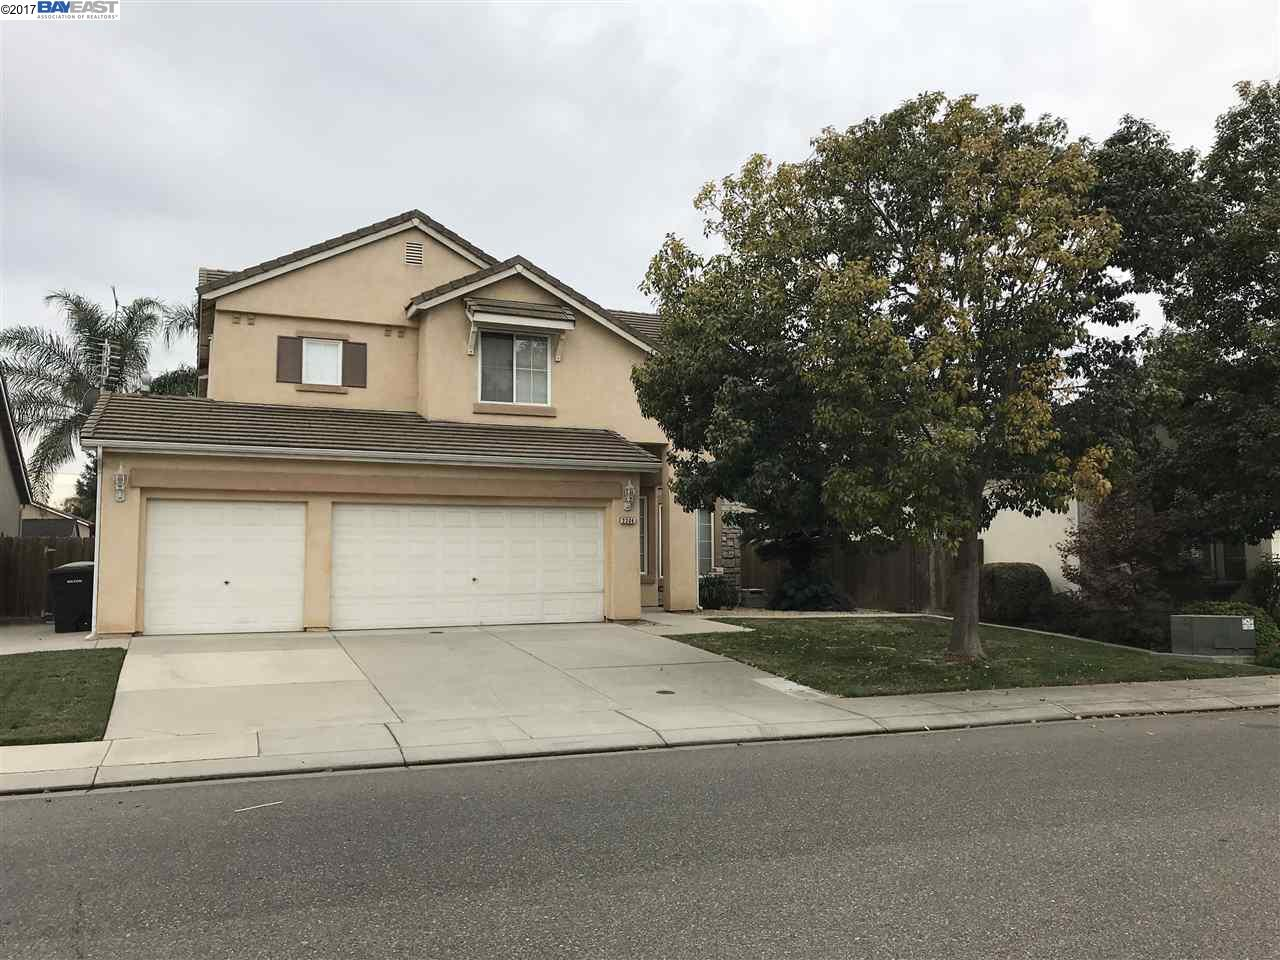 Single Family Home for Sale at 2304 Steinbeck Drive 2304 Steinbeck Drive Modesto, California 95356 United States